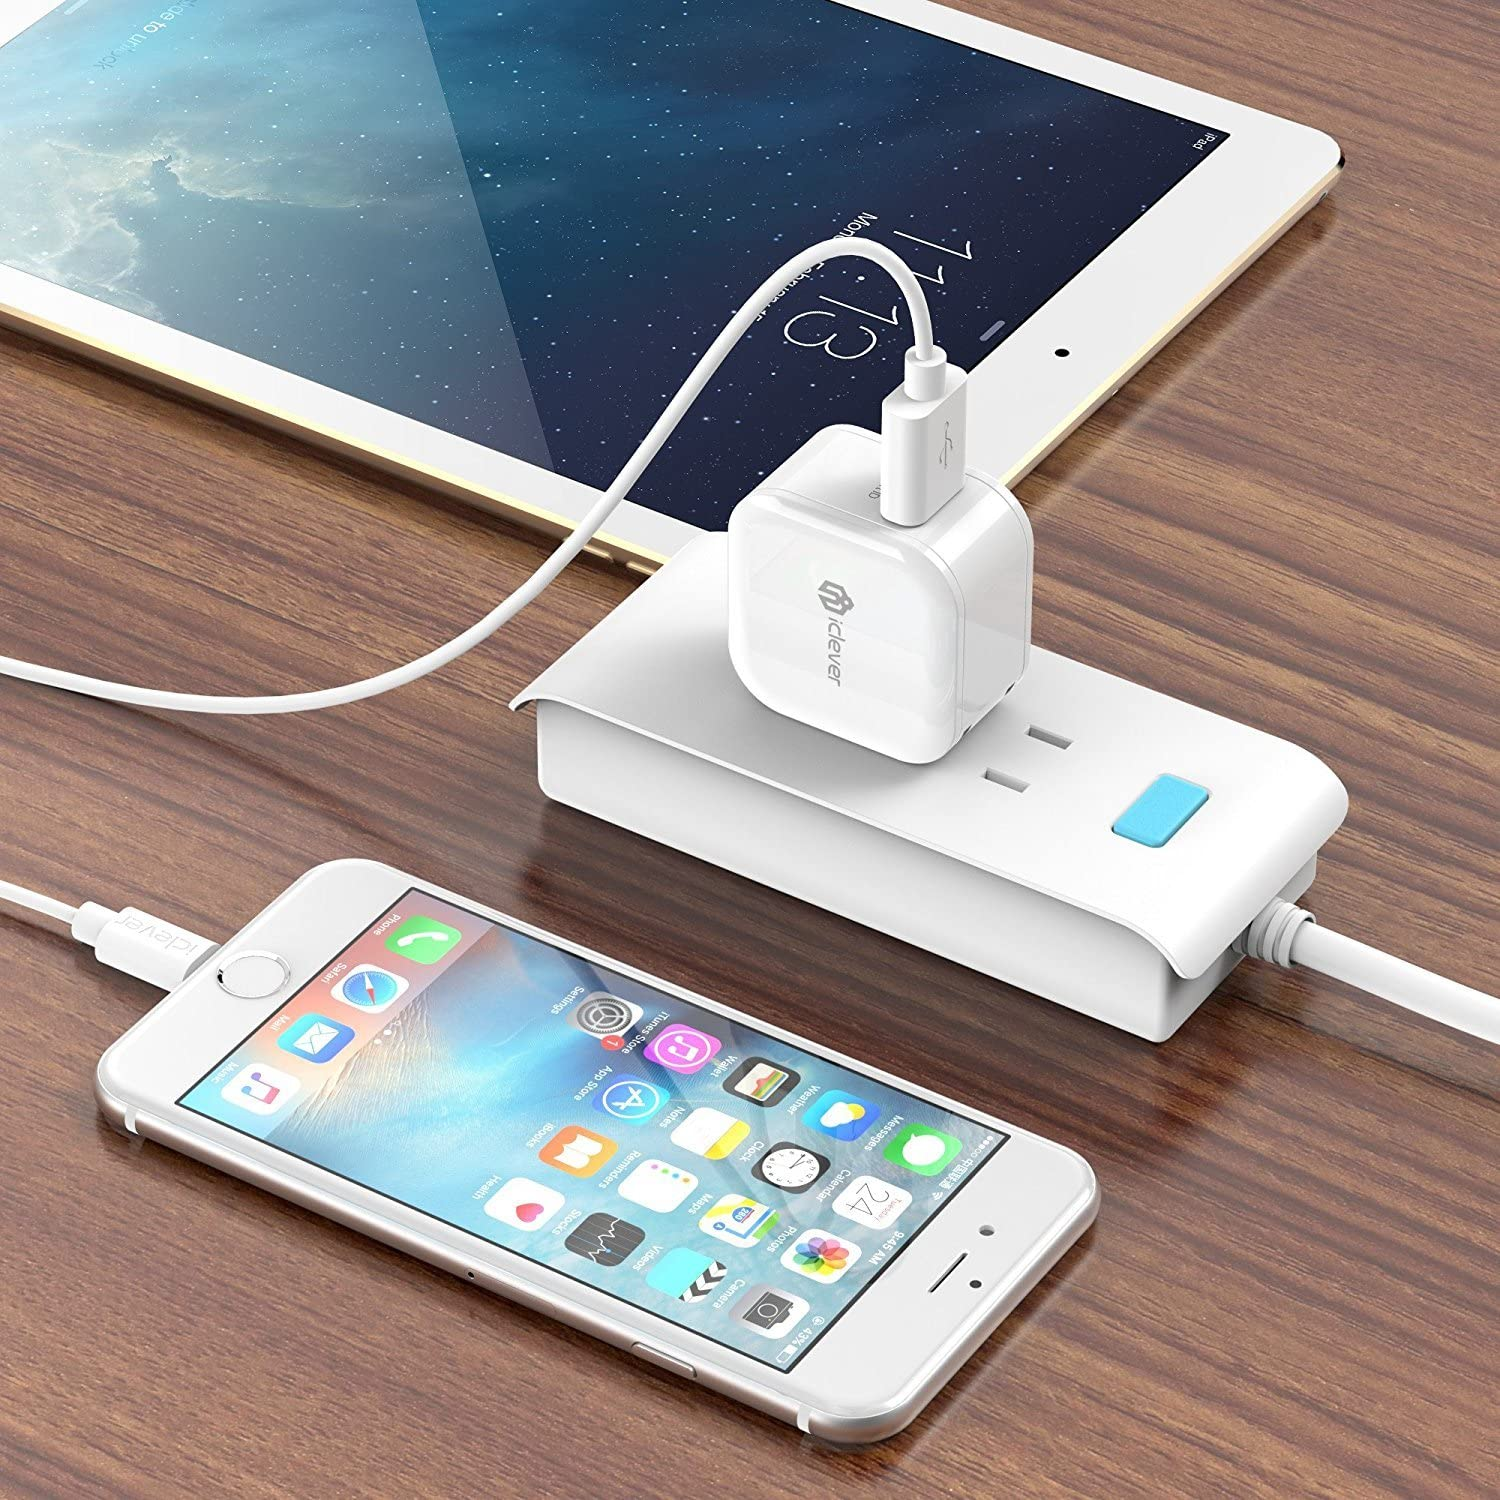 iClever BoostCube IC-TC05 2-Pack 12W USB Wall Charger with Foldable Plug for iPhone 7 // 6S // 6 // Plus iPad Air 2 // mini 3 White Note 5 and More Galaxy S7 // S6 // S6 Edge//Edge+